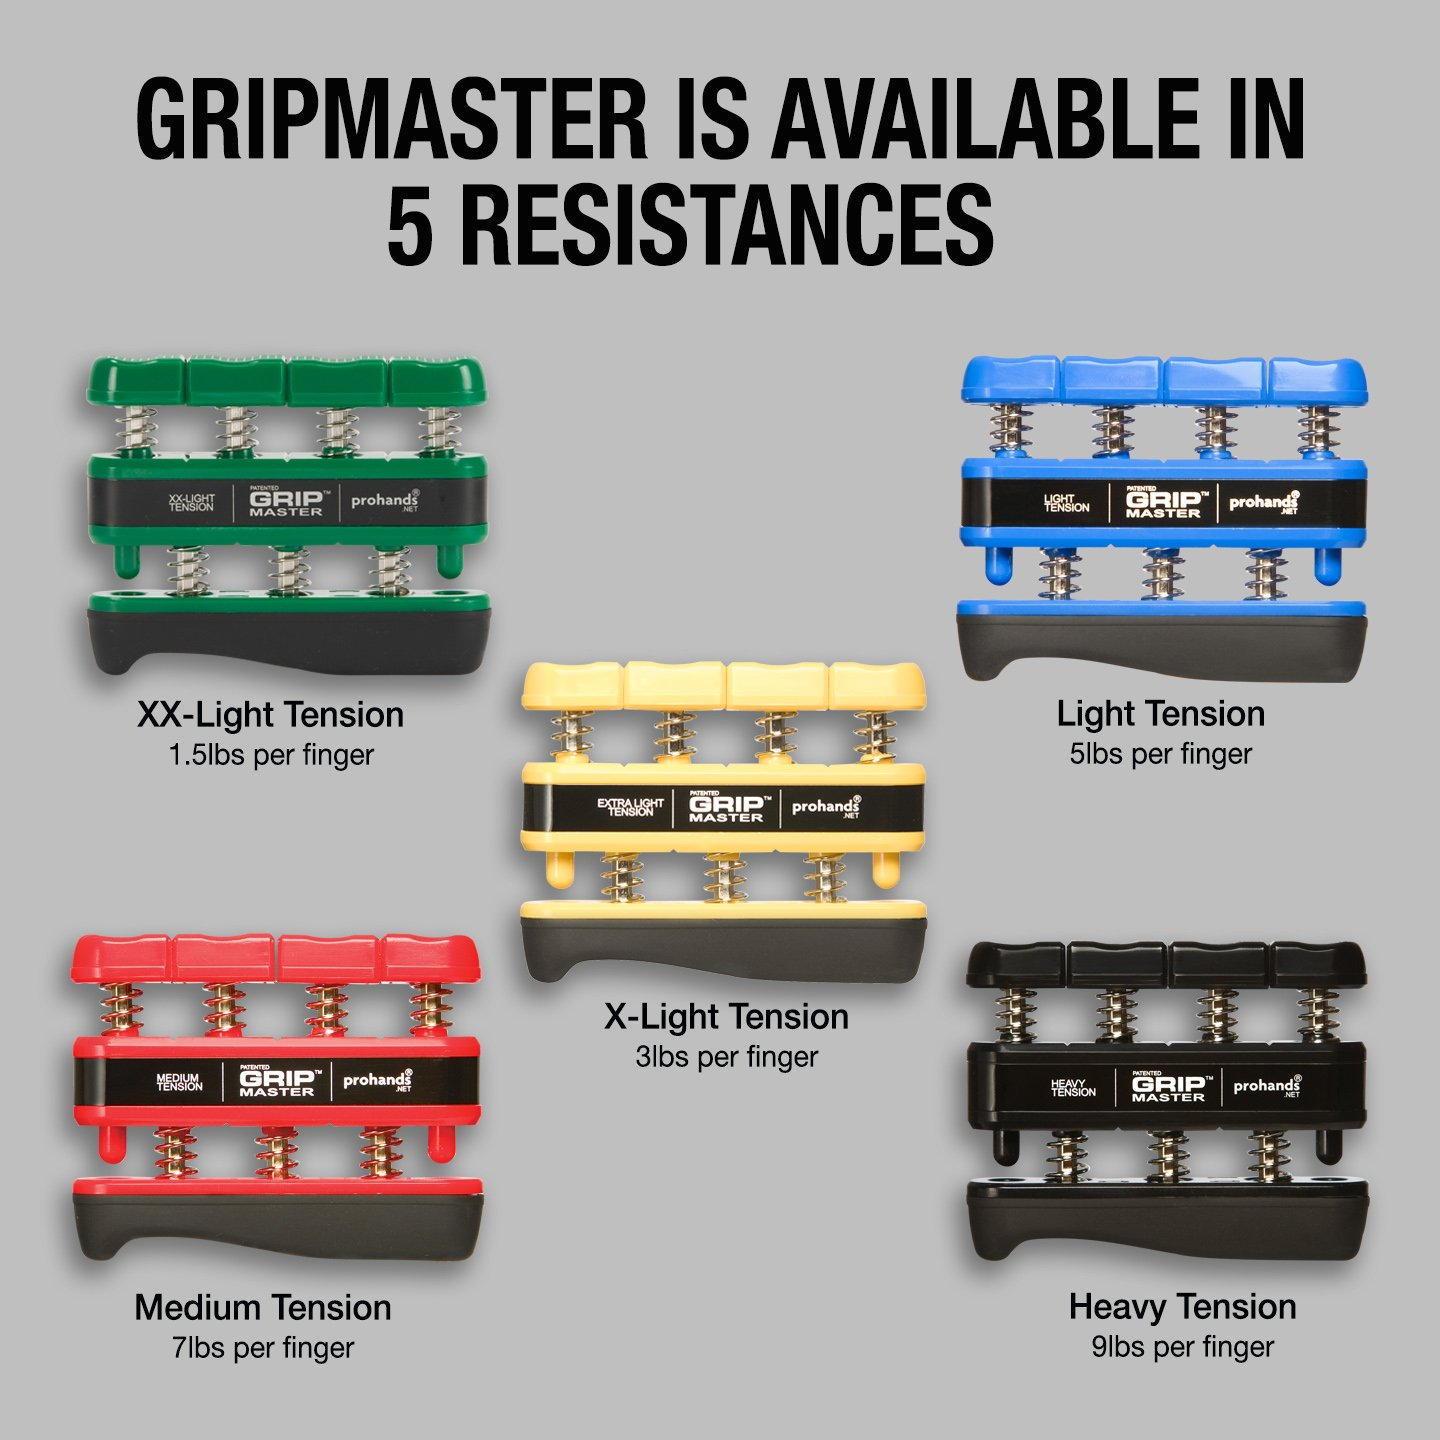 GRIP MASTER Gripmaster Hand Exerciser Green, XX-Light Tension (1.5-Pounds per Finger) by GRIP MASTER (Image #4)